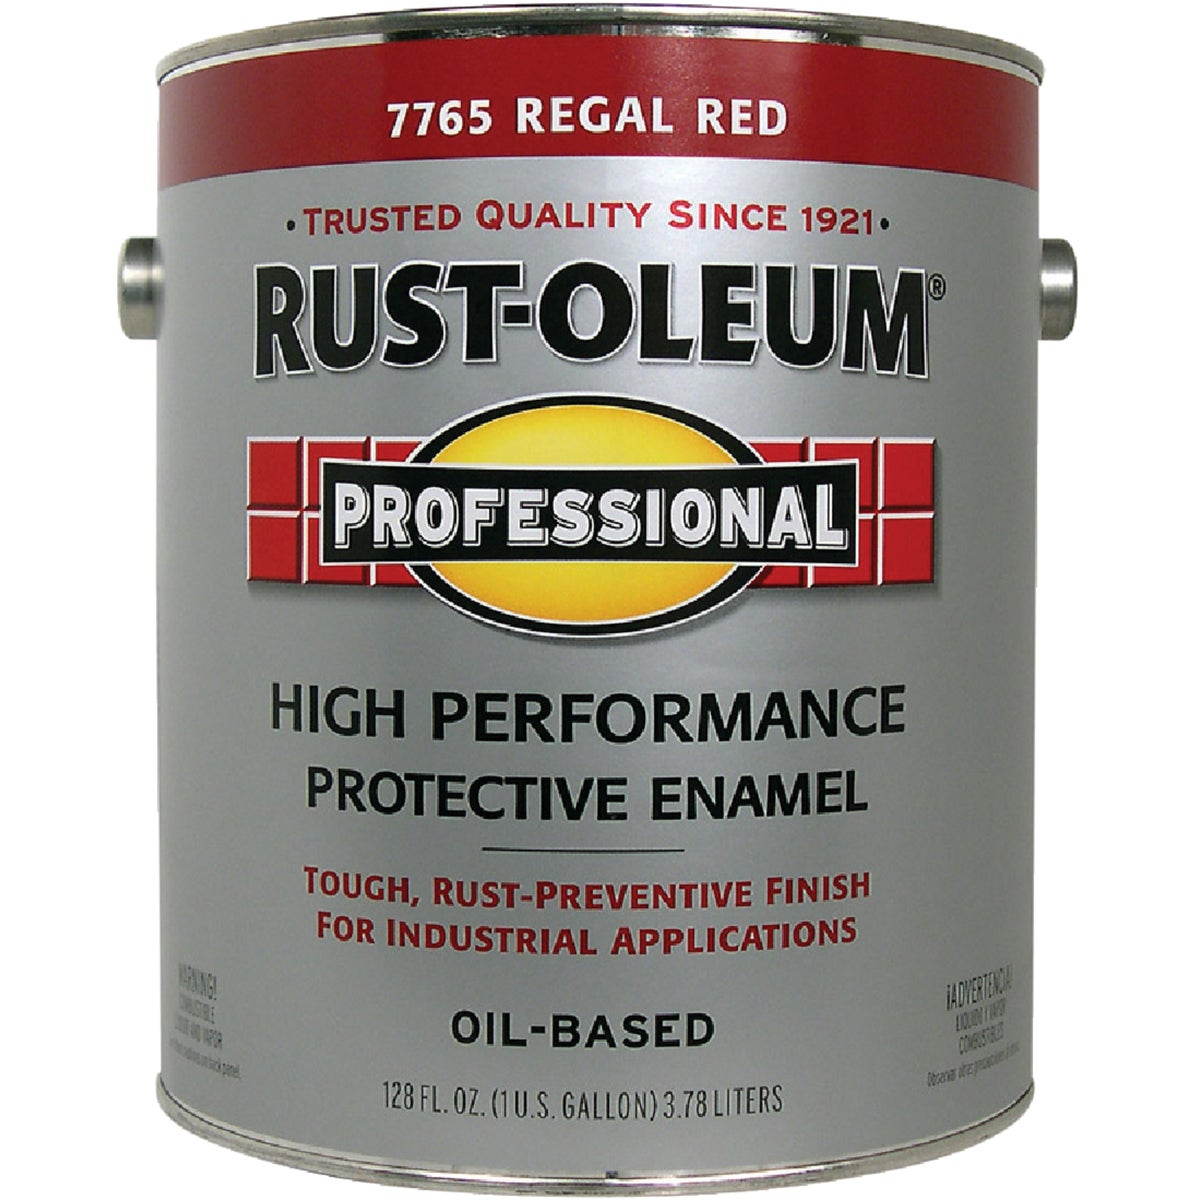 REGAL RED ENAMEL - 7765-402 by Rustoleum